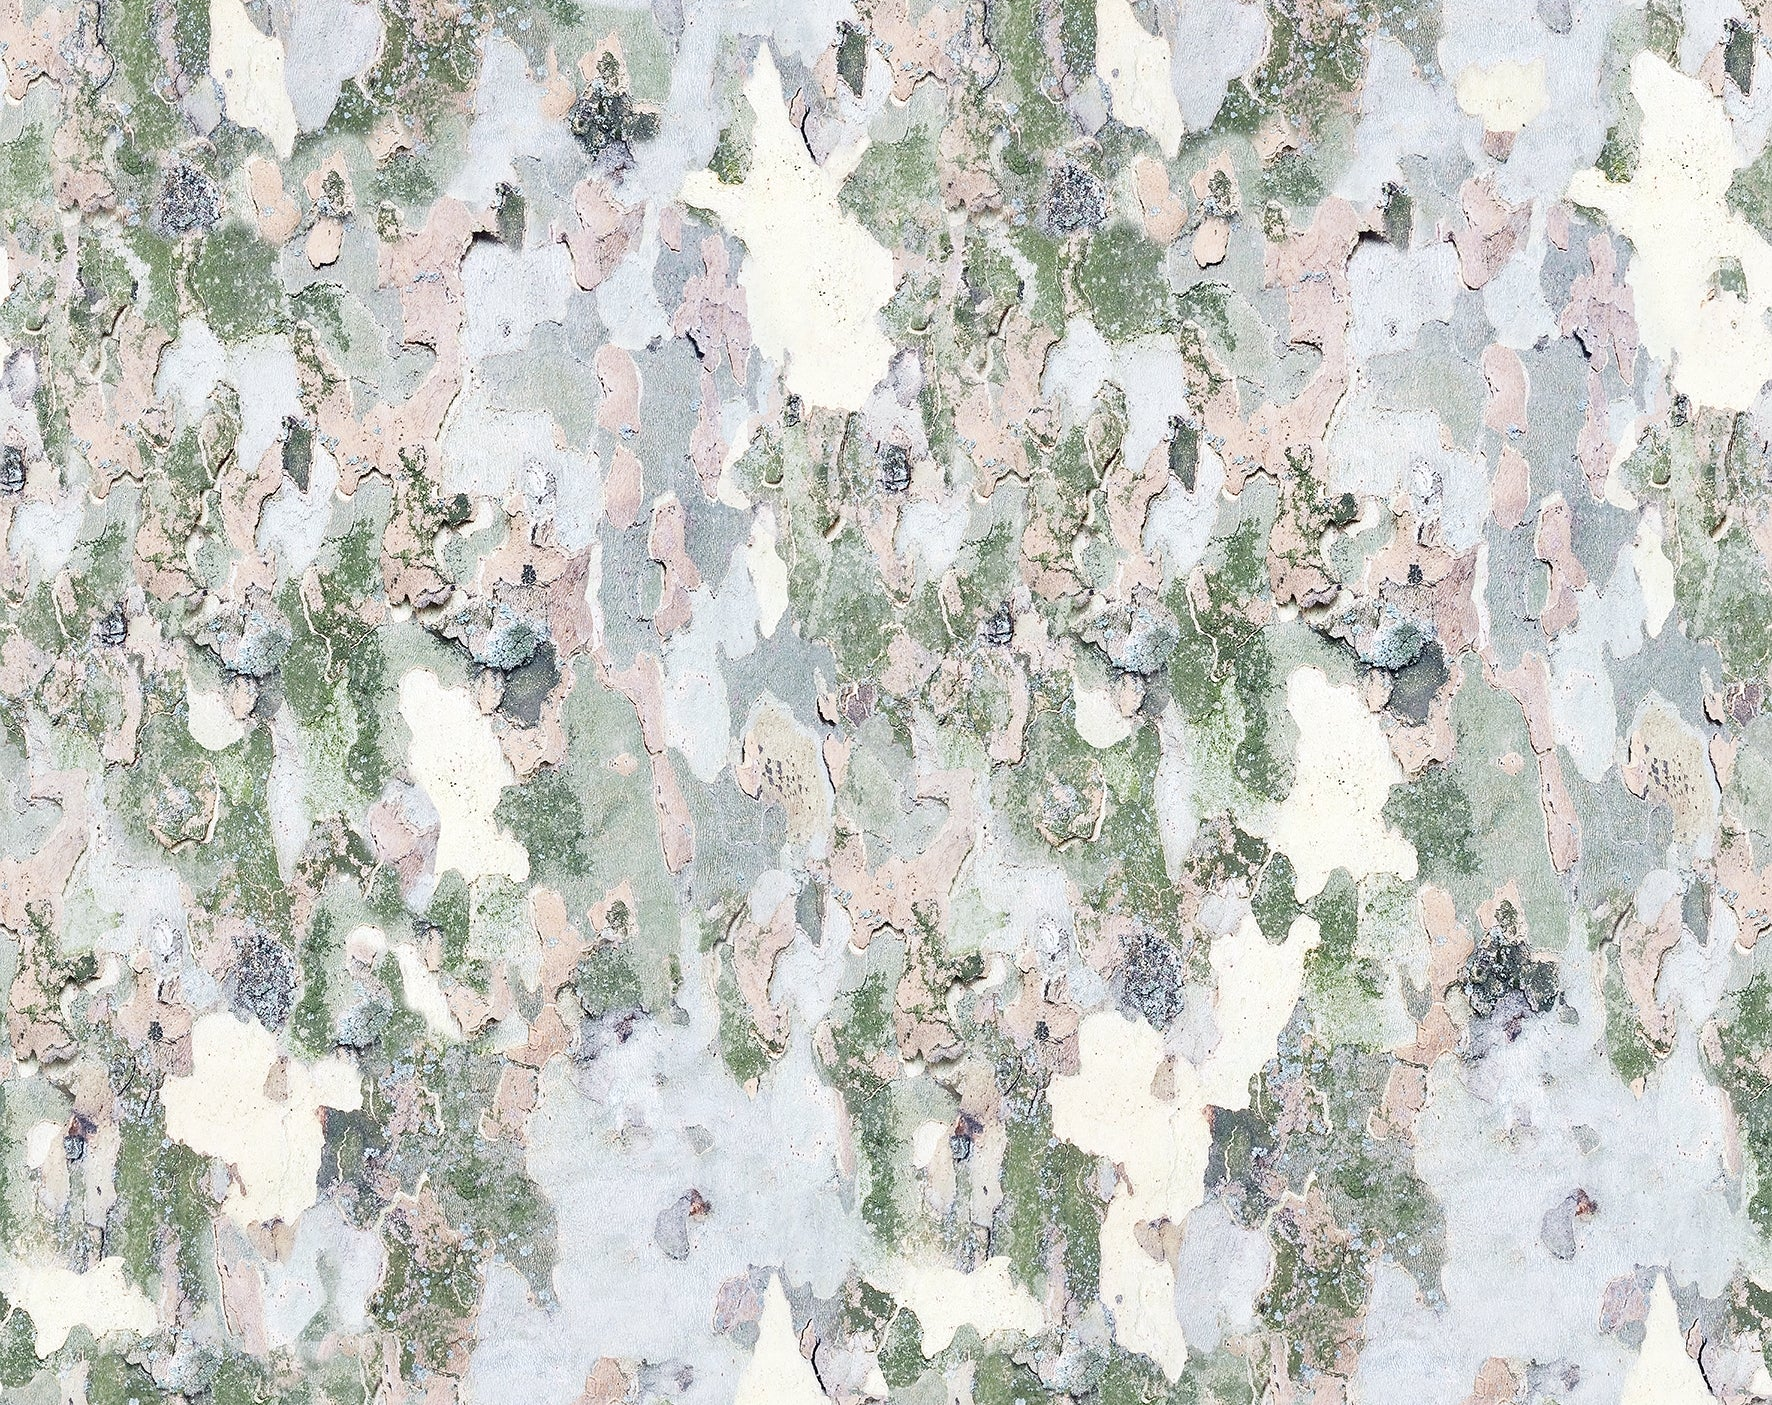 Ella Doran's Camouflage wallpaper design